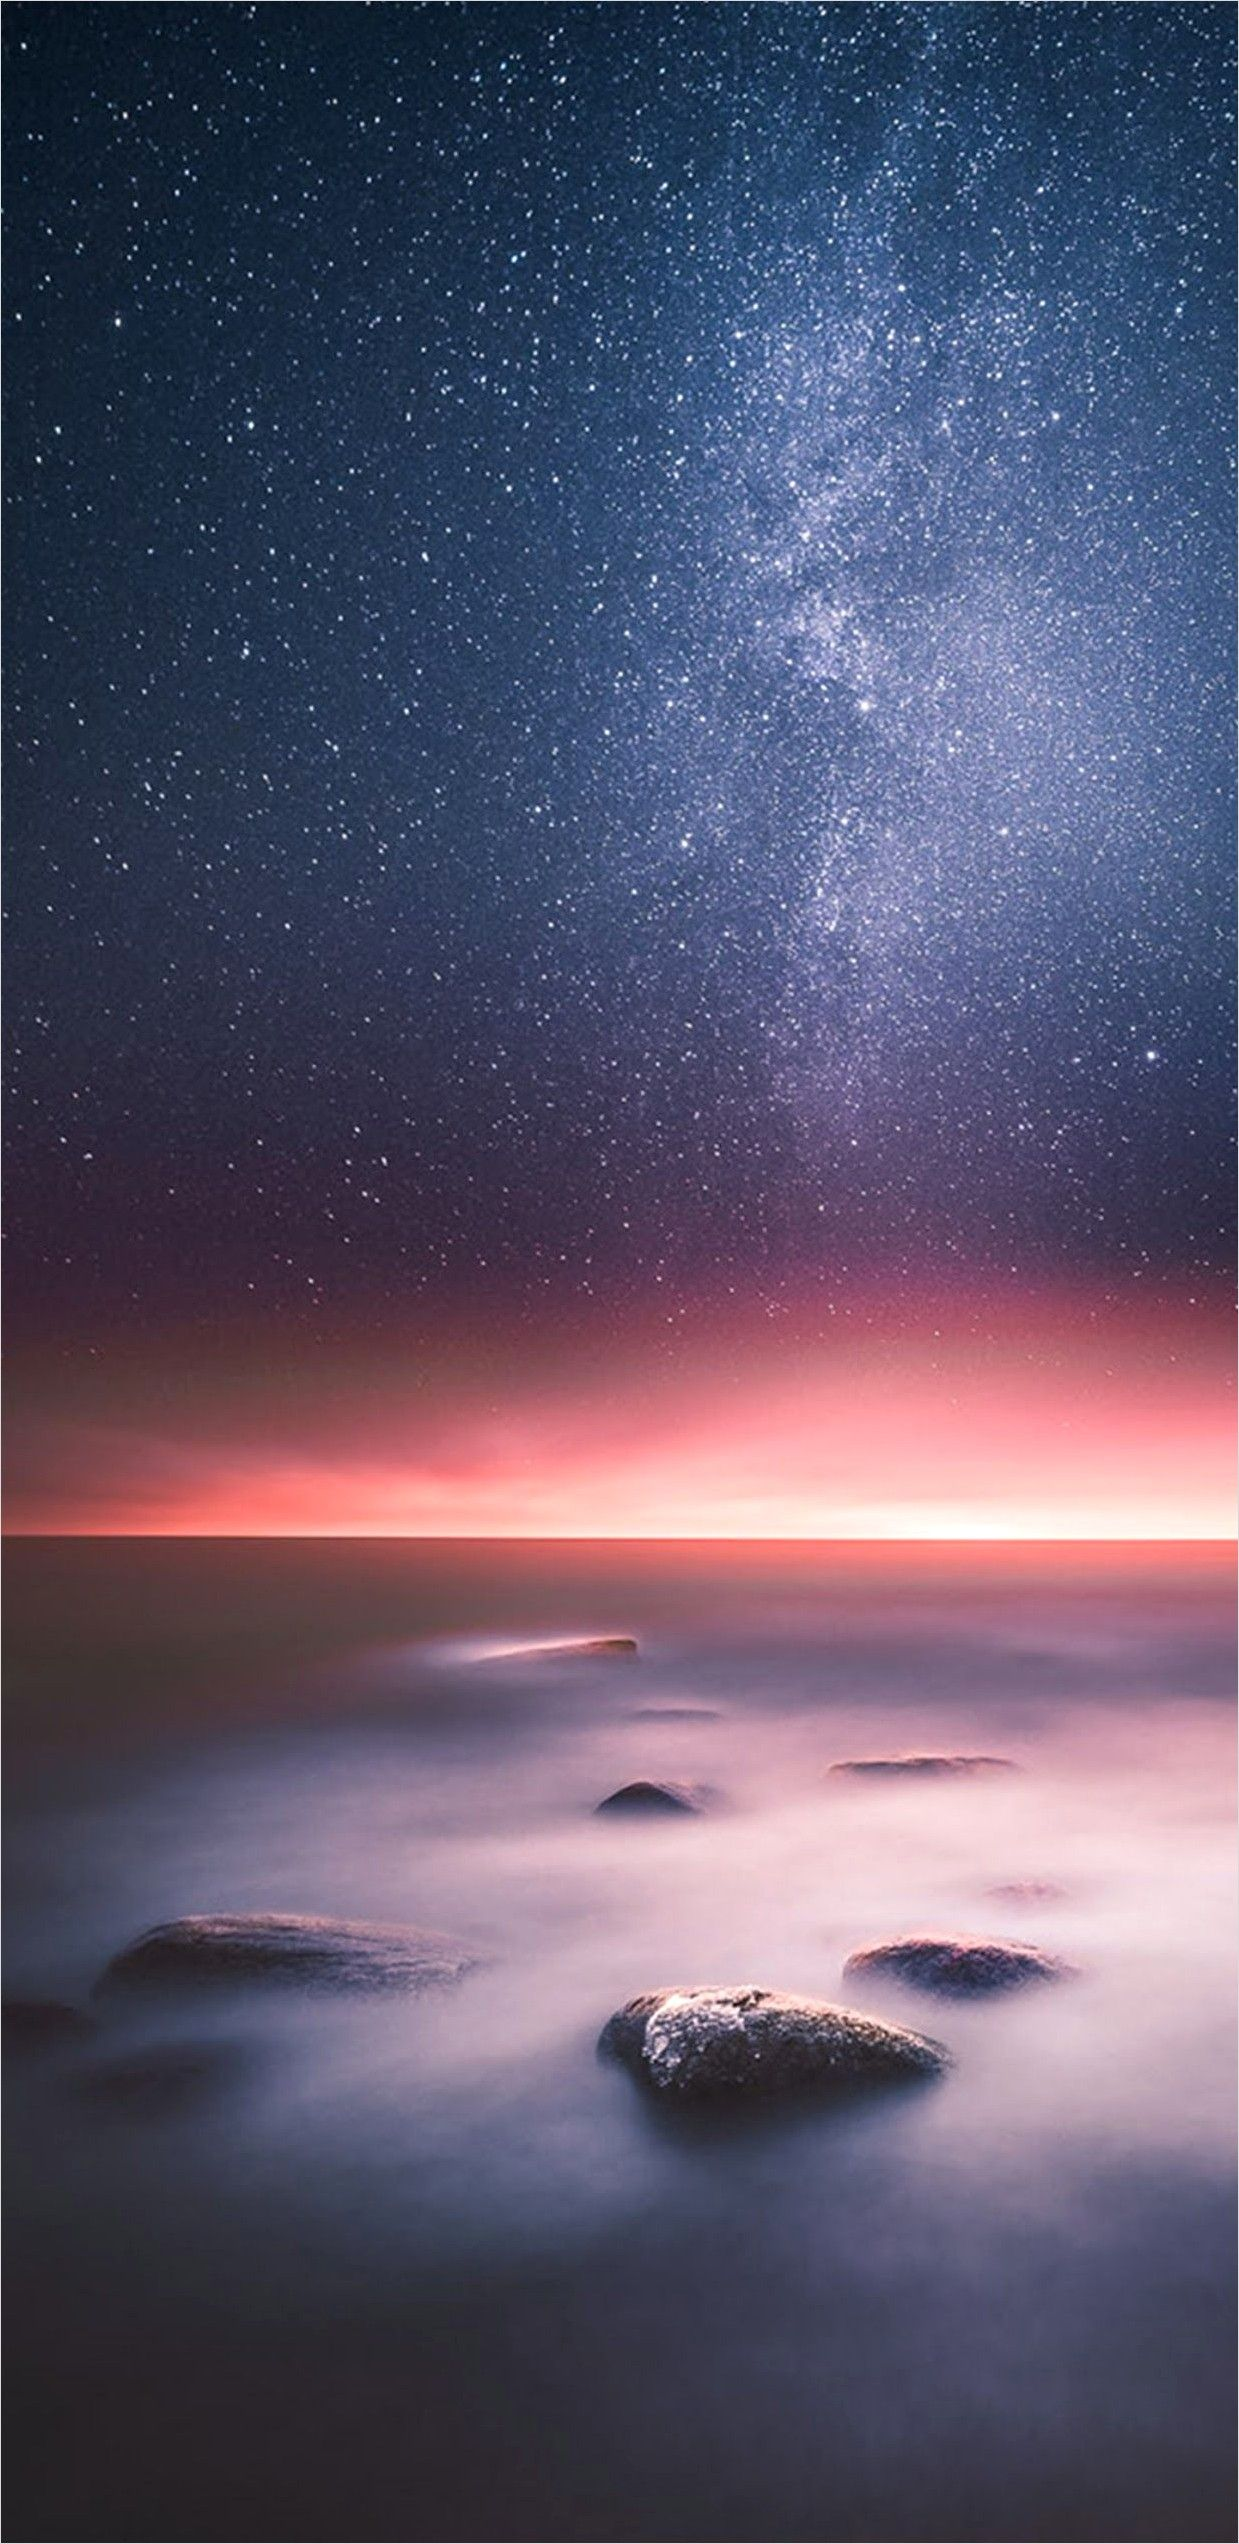 4k Space Wallpaper For S9 Samsung Galaxy Wallpaper Samsung Wallpaper Galaxy Wallpaper